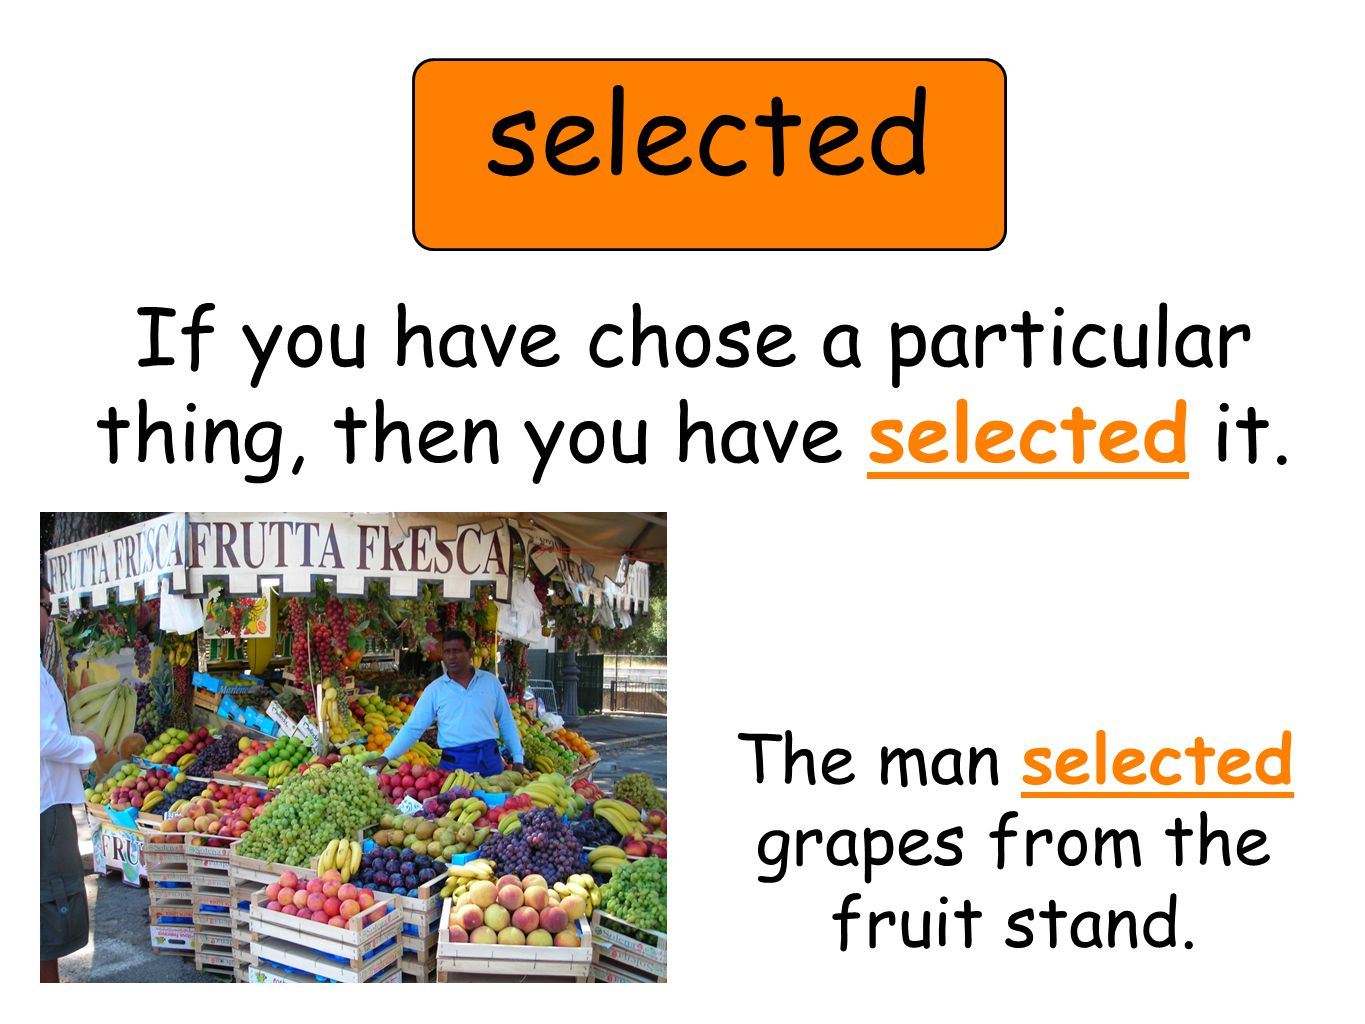 selected If you have chose a particular thing, then you have selected it.